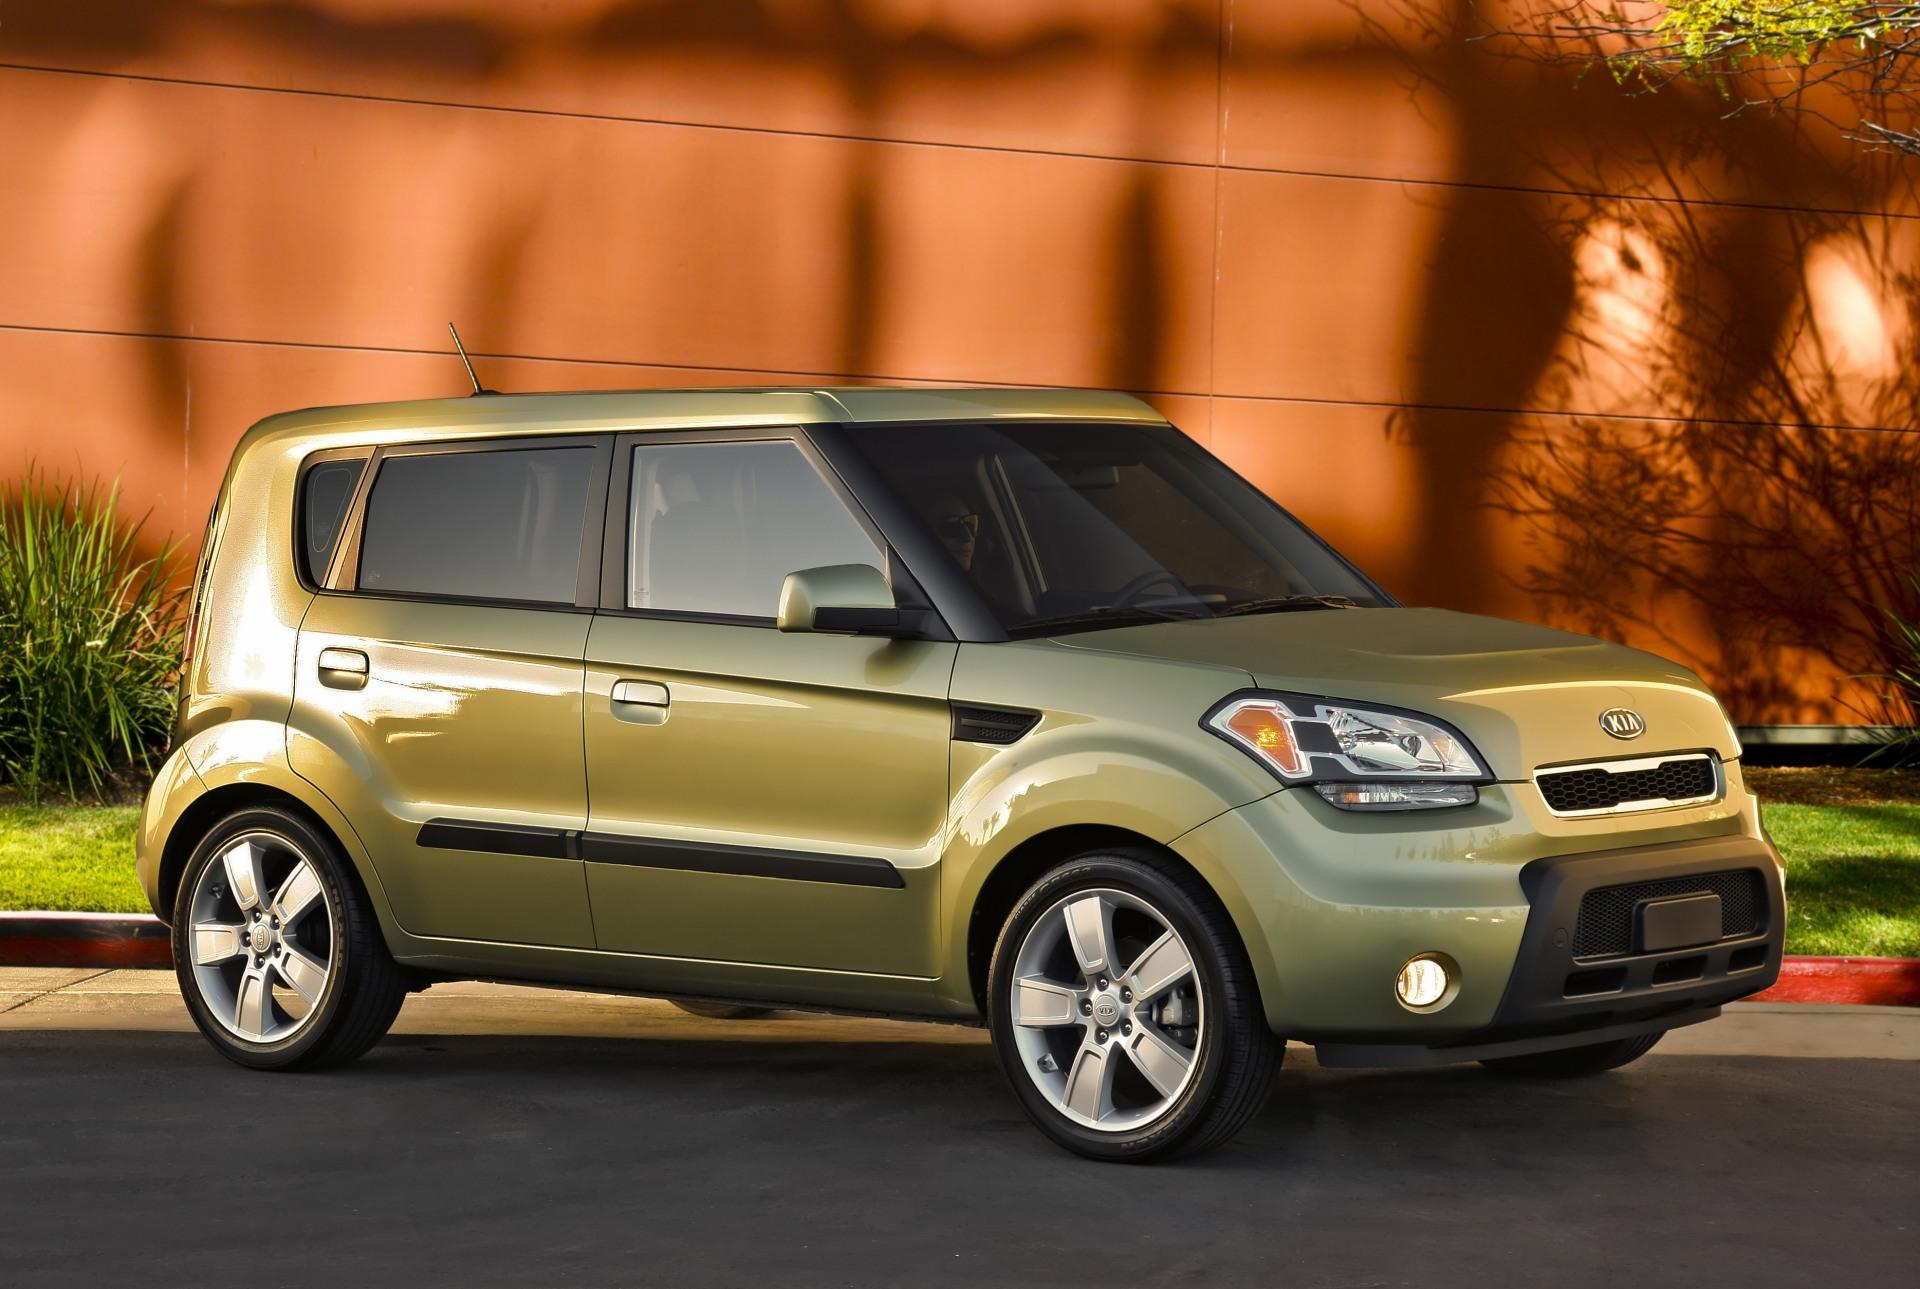 2011 Kia Soul News and Information | conceptcarz.com